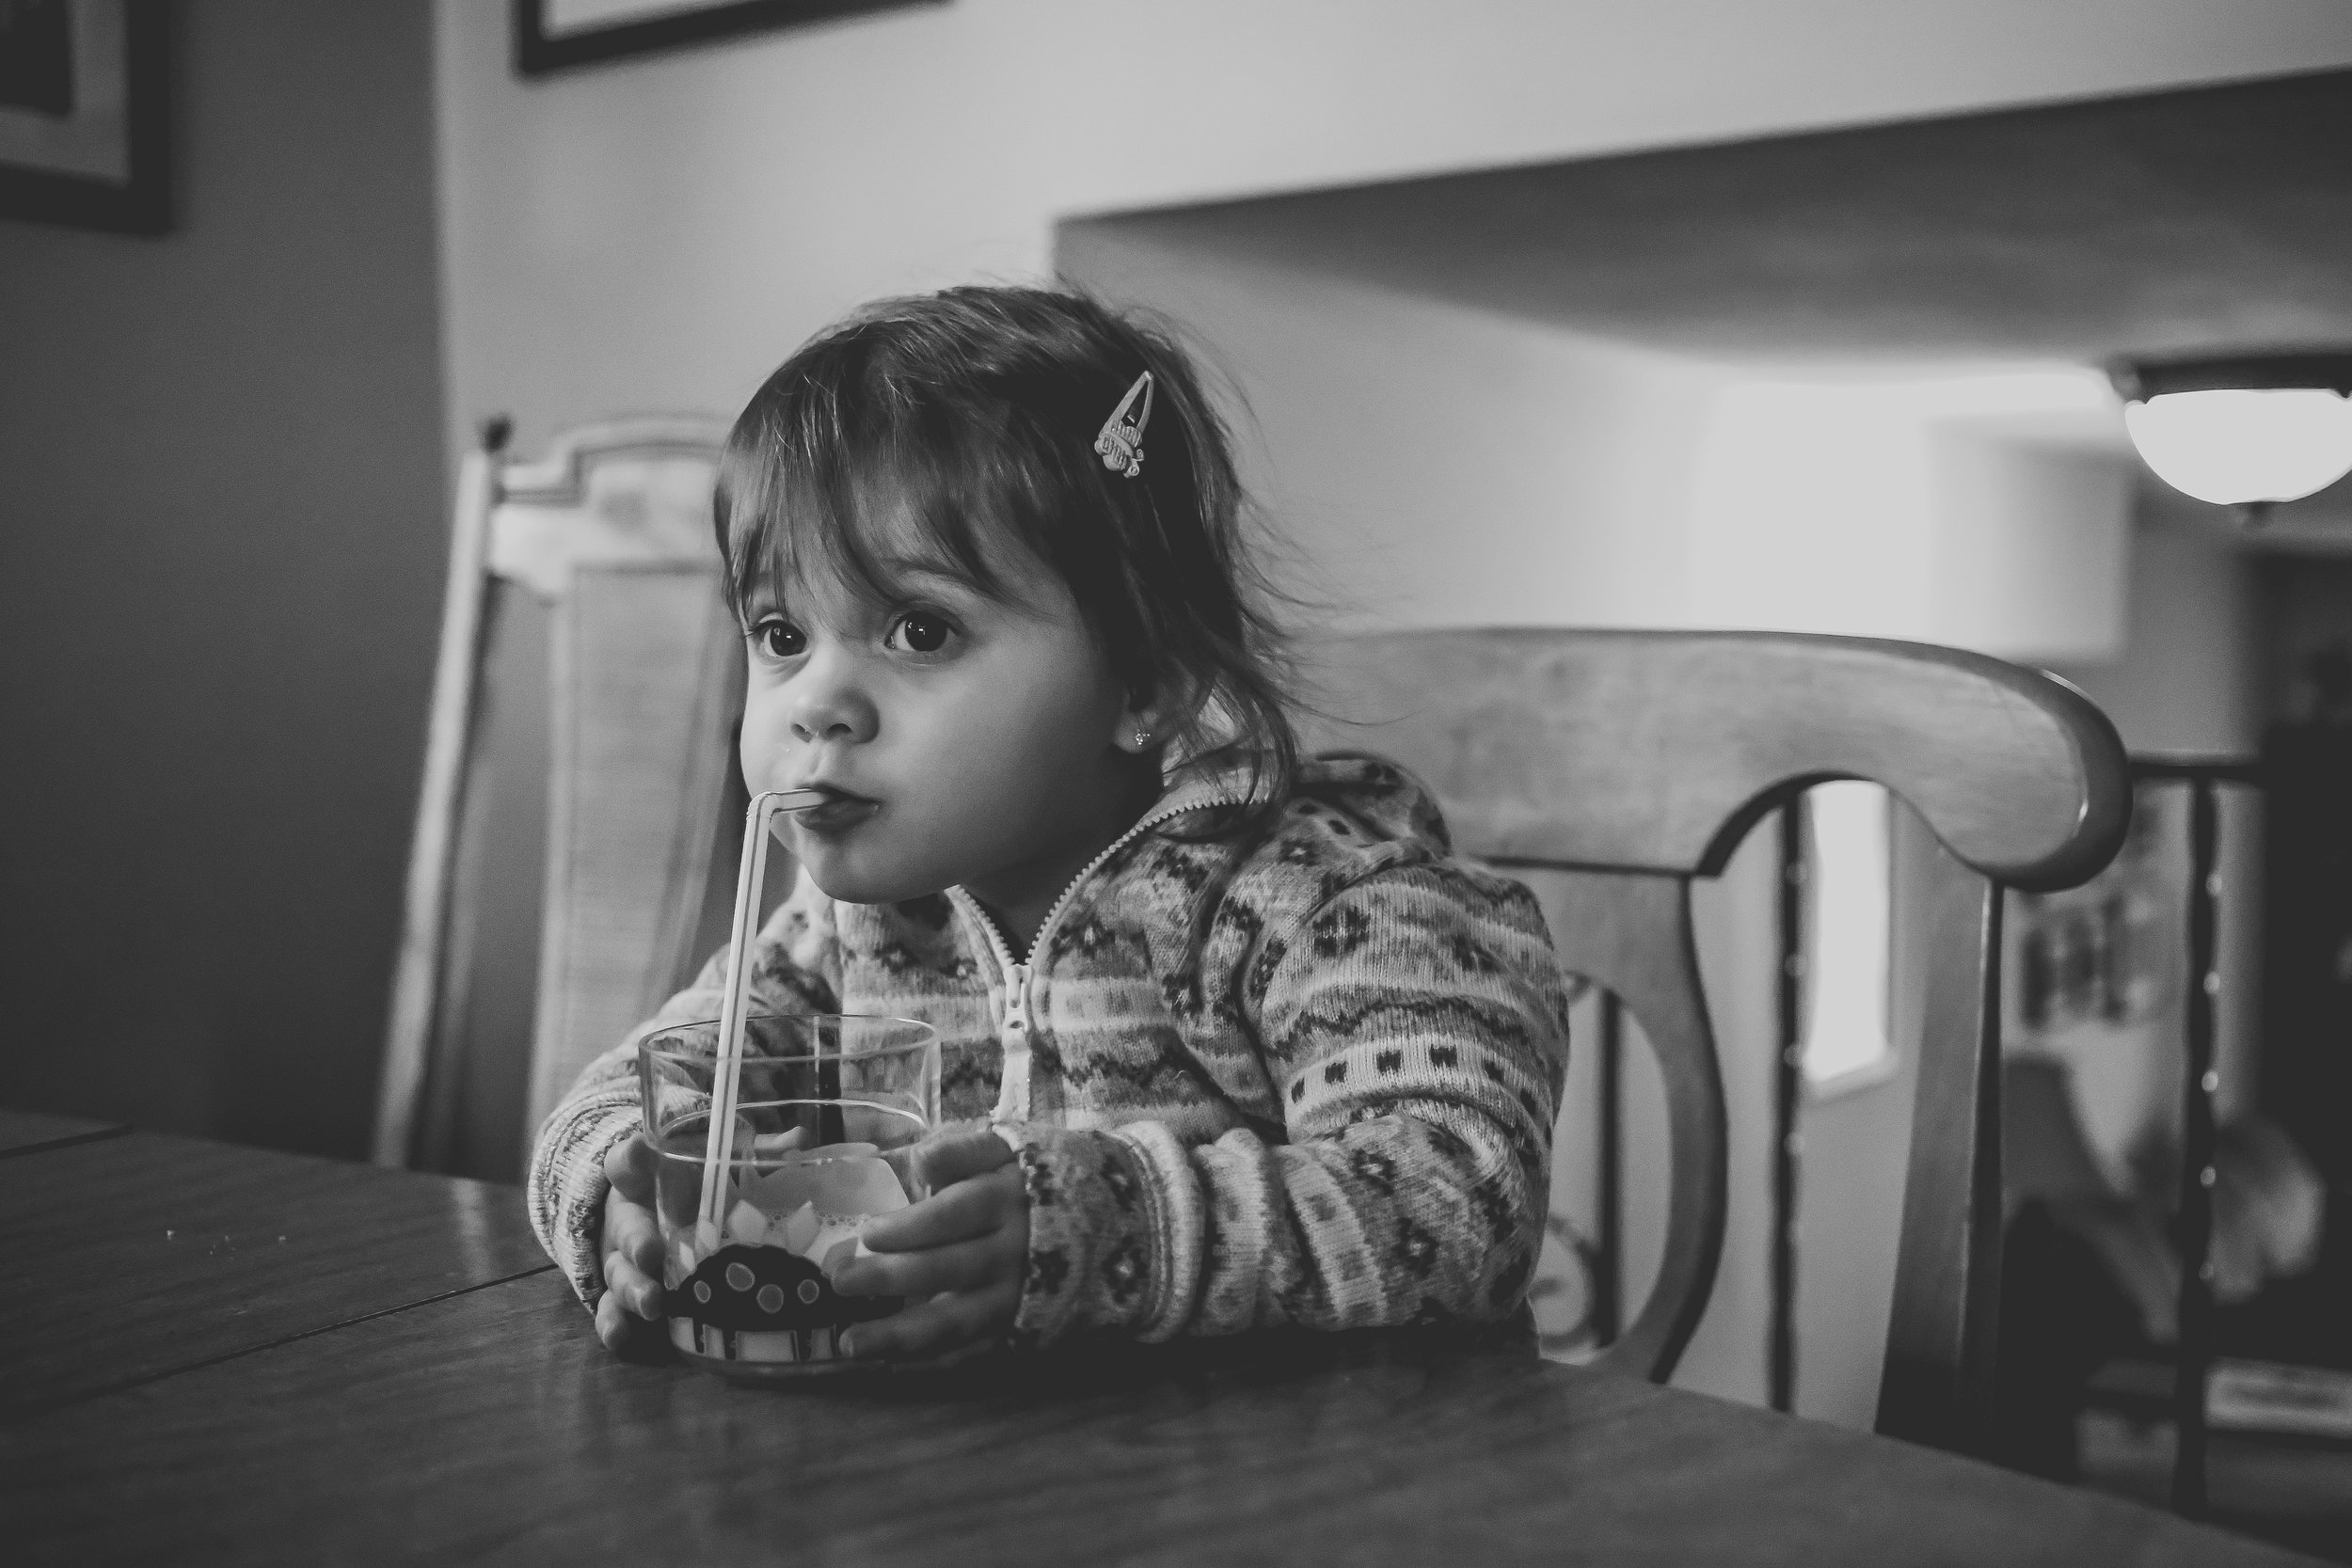 Toddler girl drinking milk, candid storytelling photography by Jen Grima, Macungie, PA.